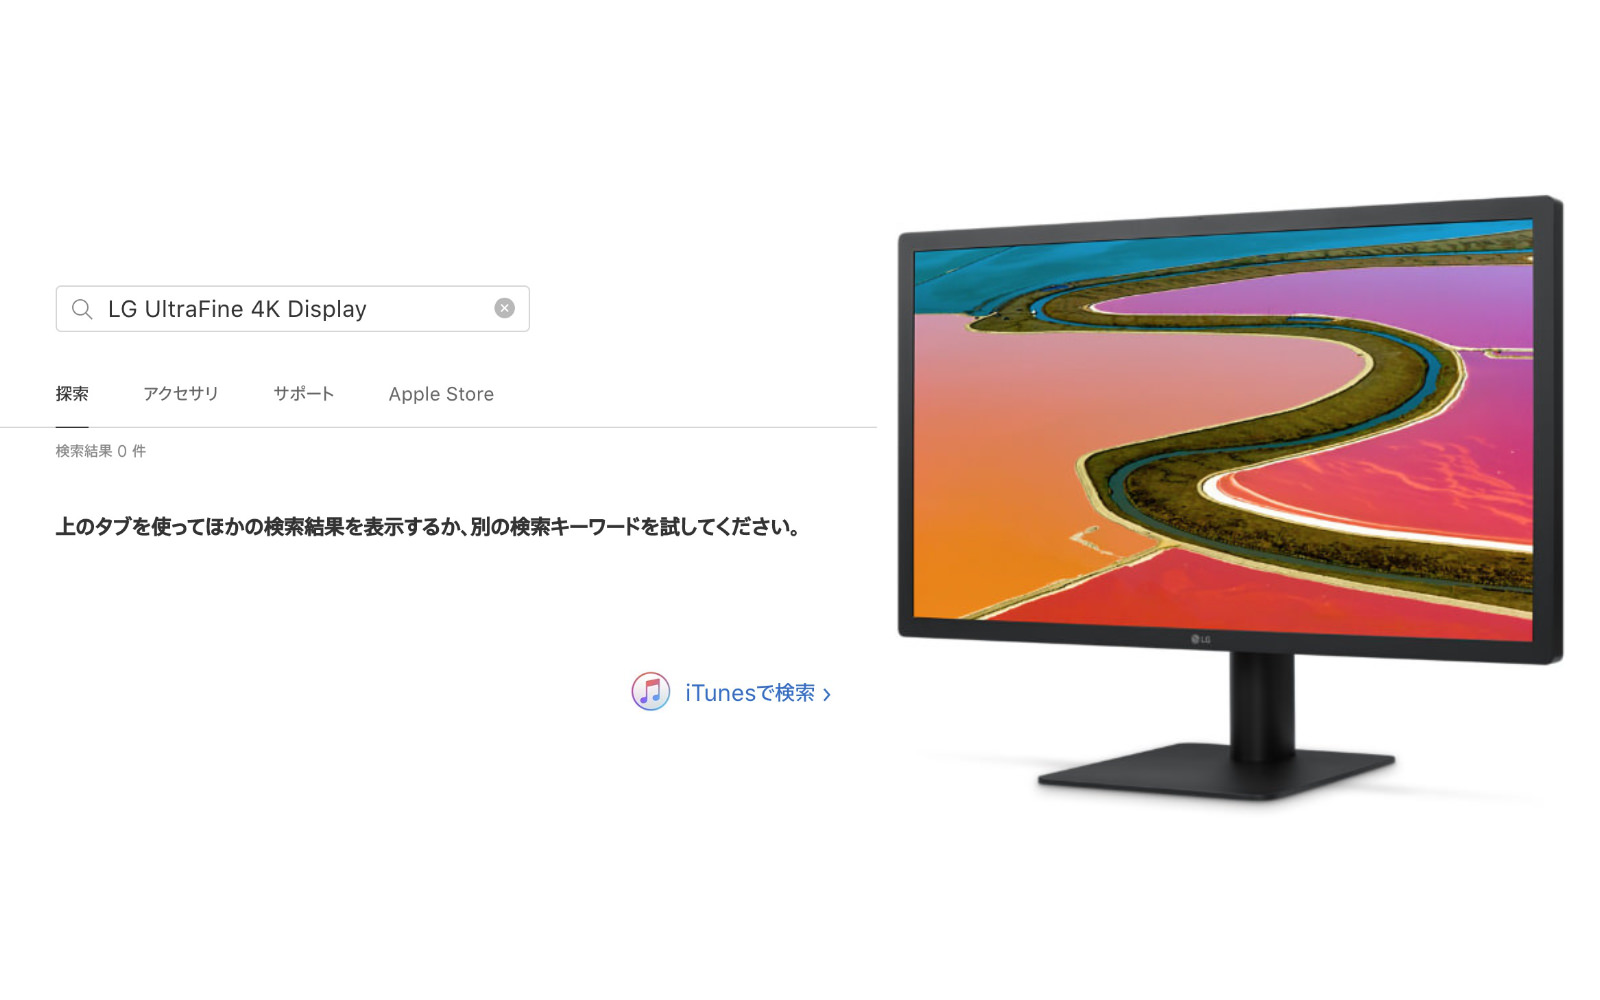 LG 4K Display Is Gone